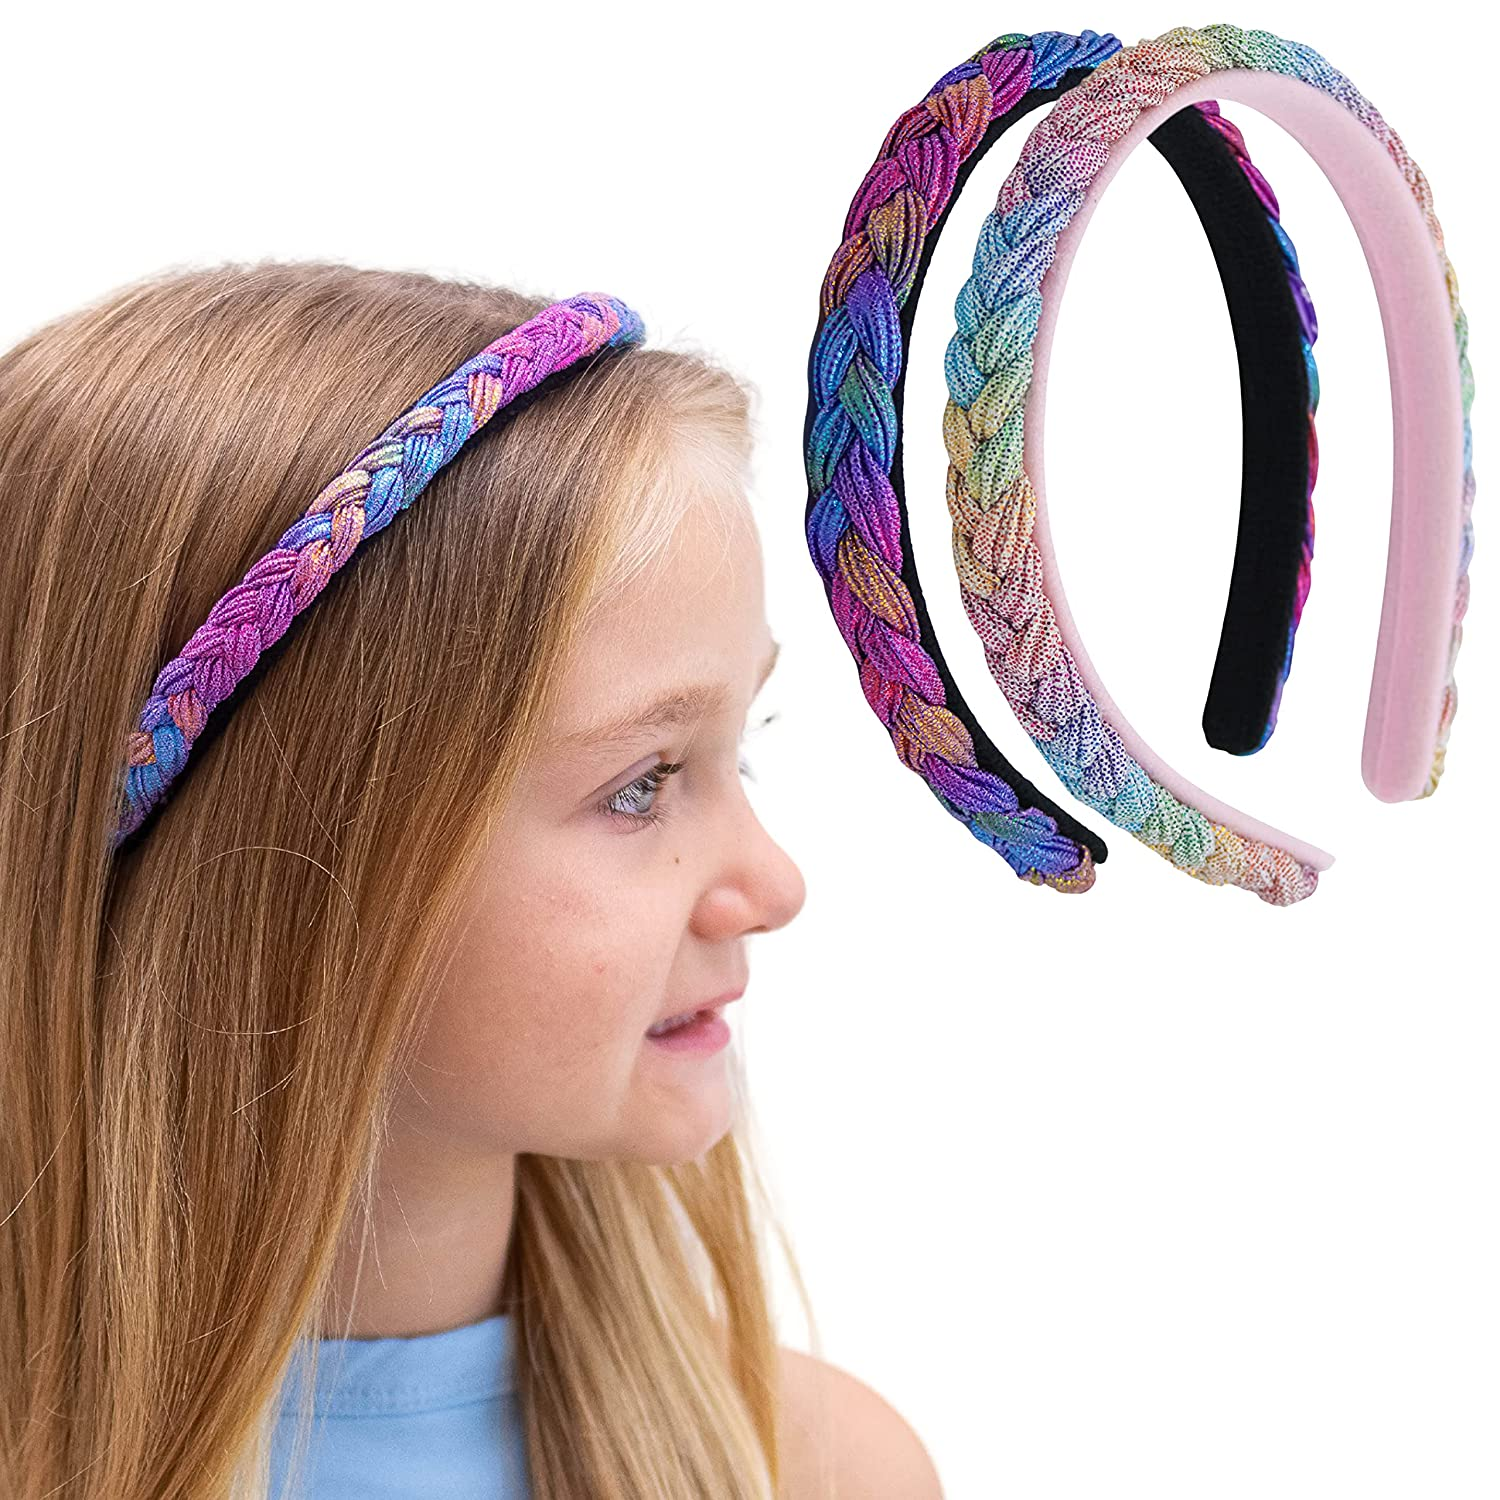 FROG SAC 2 Braided Headbands Cheap SALE Start For Outlet SALE Dye Girls No Tie Adjustable Sl